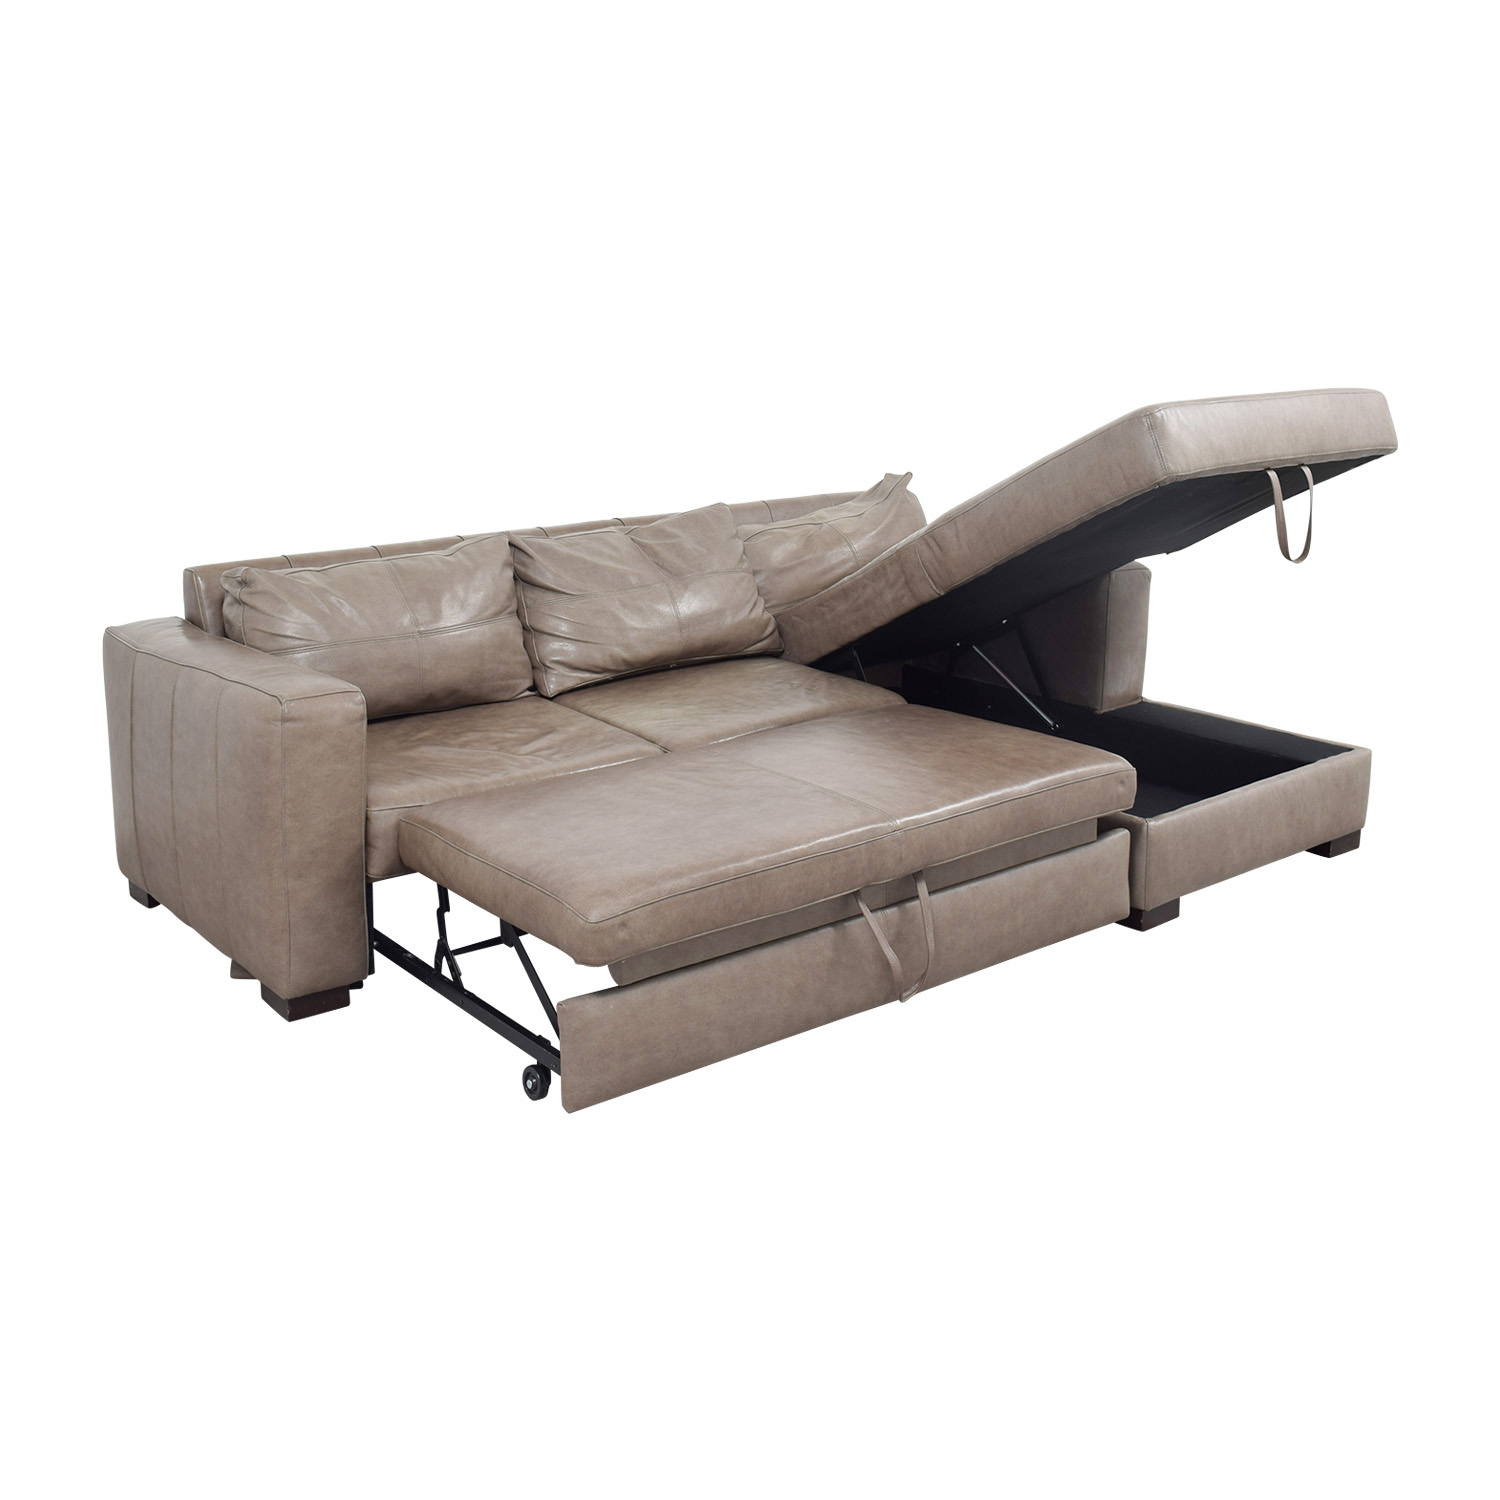 Arhaus Arhaus Grey Soft Leather Convertible Sleeper Sofa coupon